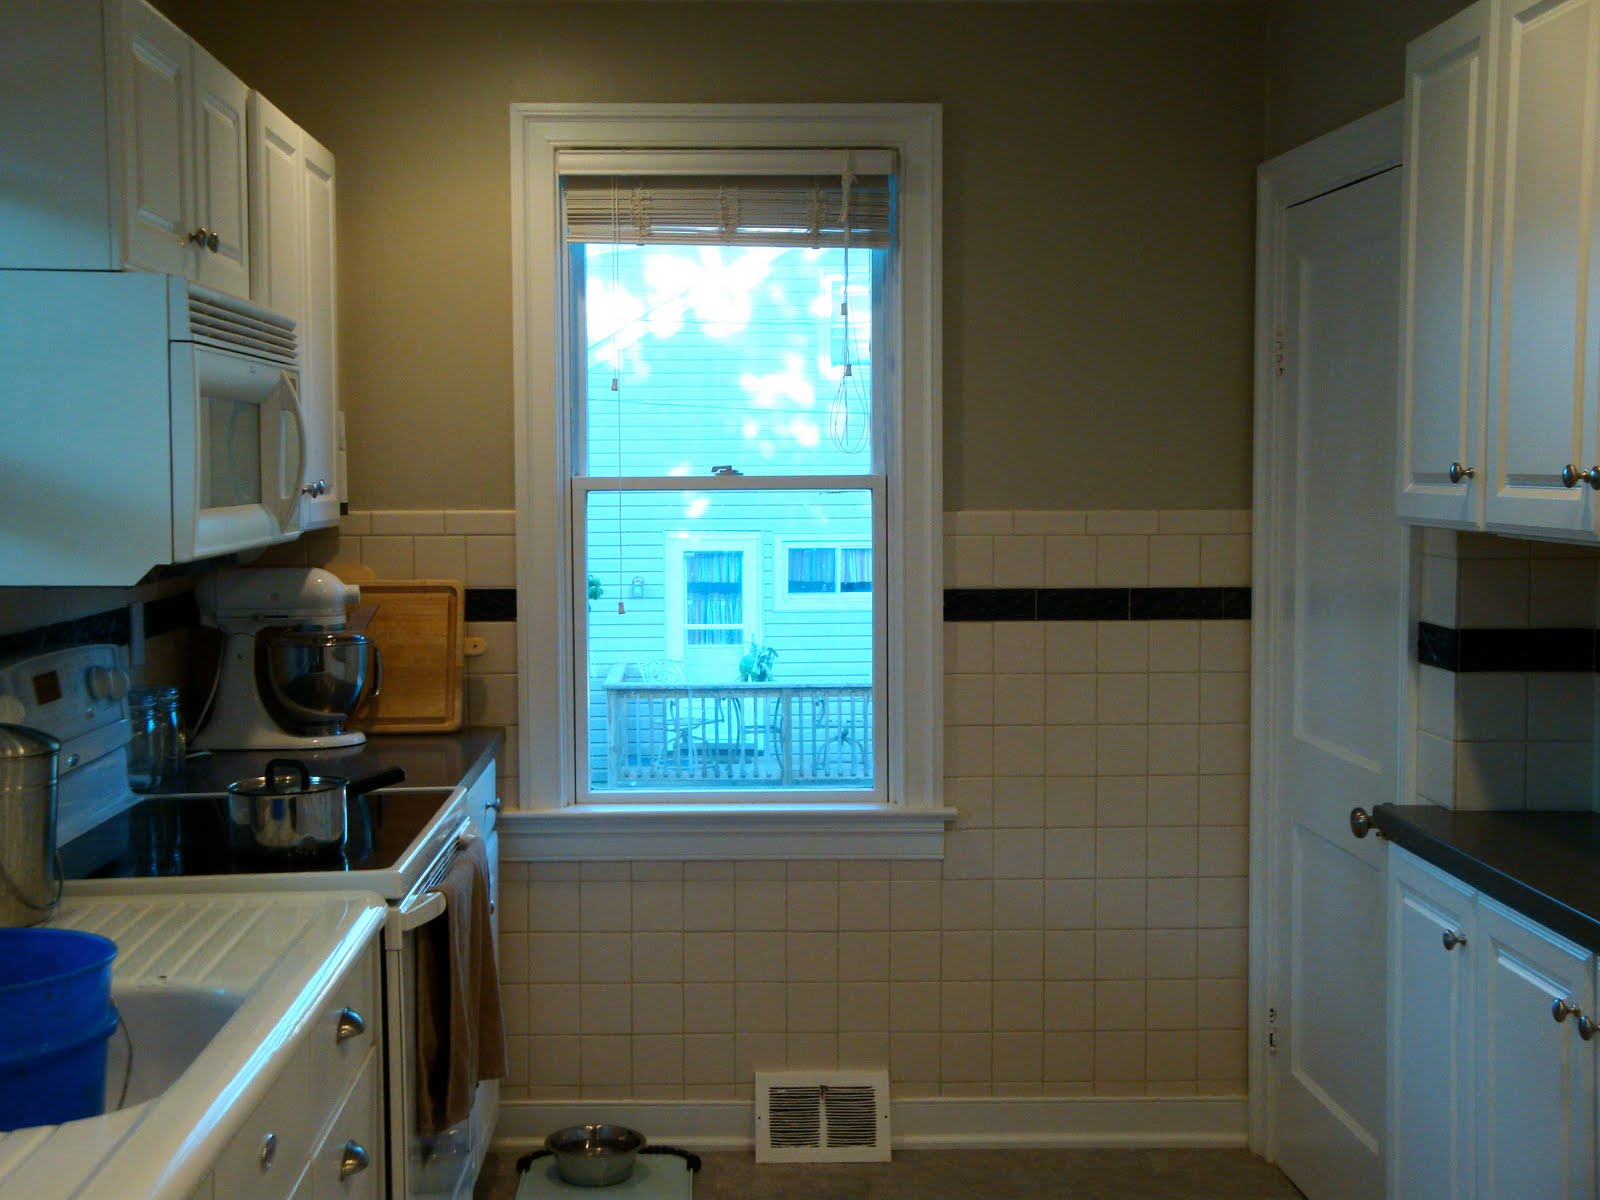 Remodelaholic | Kitchen Backsplash Tiles, Now Beadboard